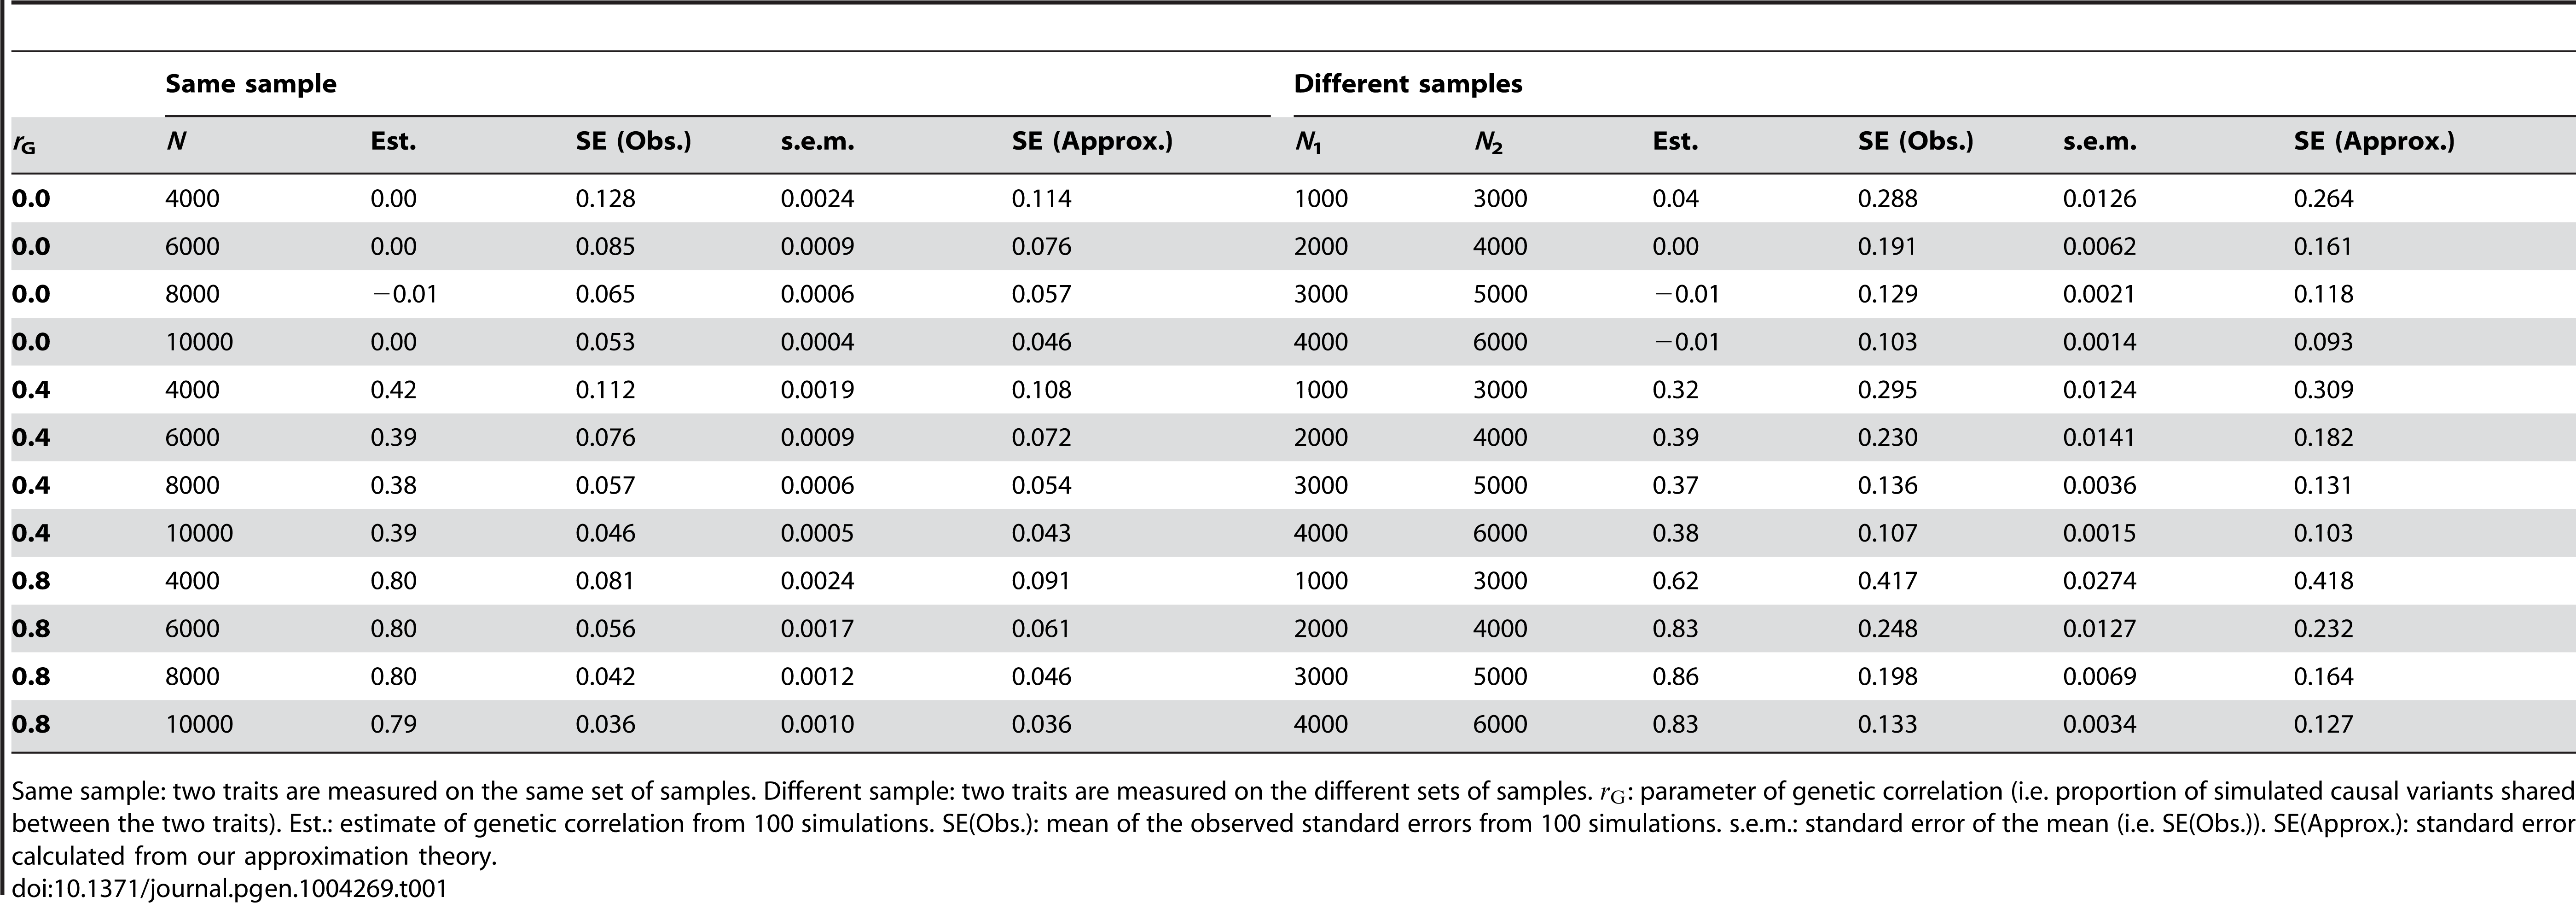 Standard error of the estimate of genetic correlation from a bivariate analysis of two traits measured on the same or different samples using genome-wide SNP data.